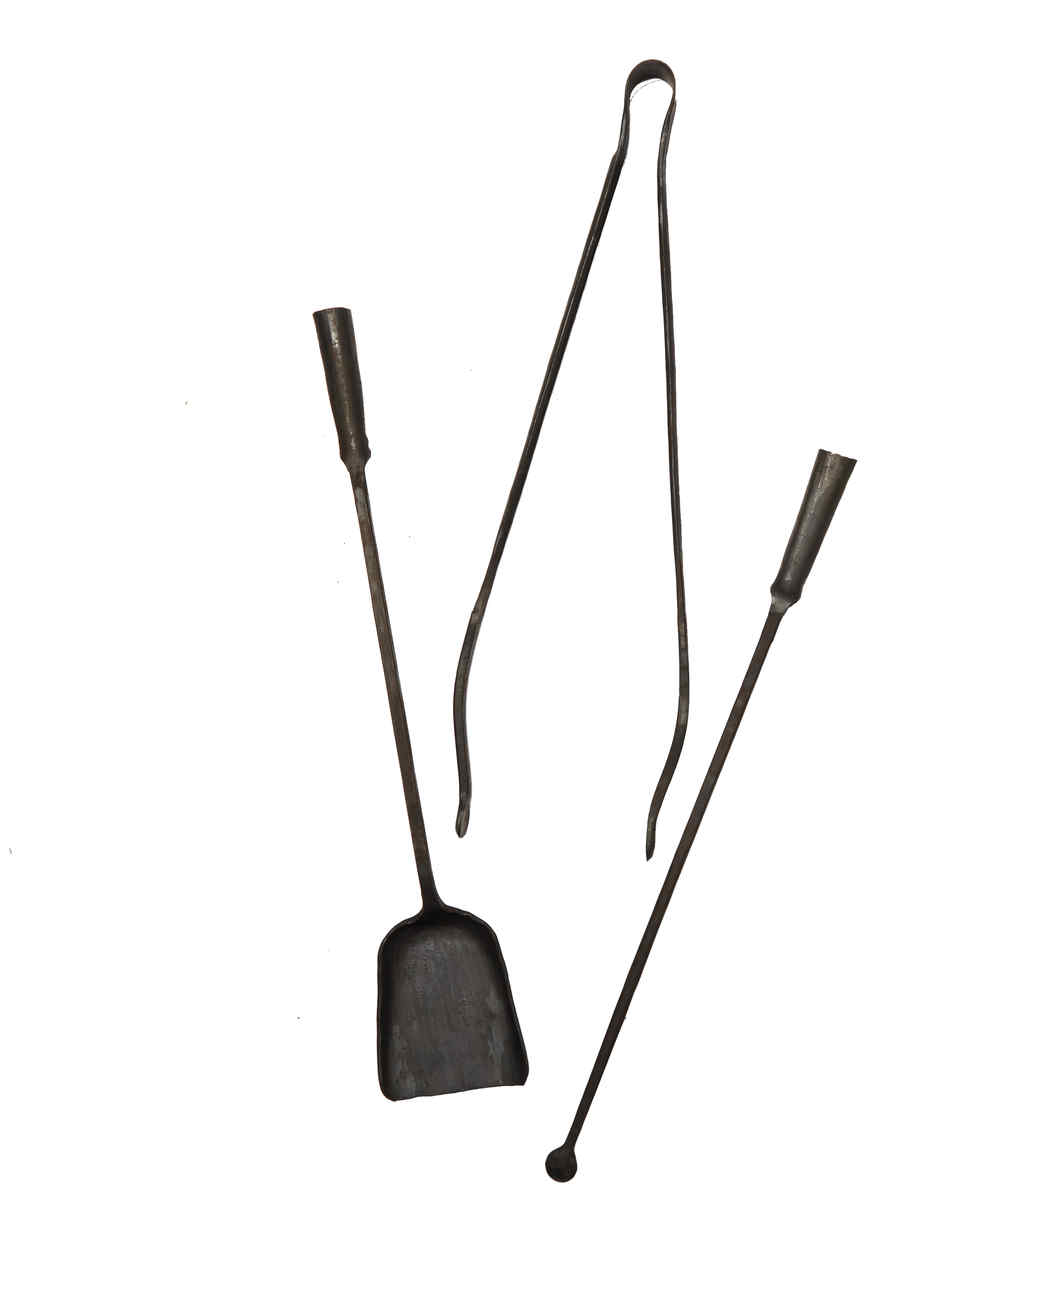 fireplace-tools-016-d112390.jpg